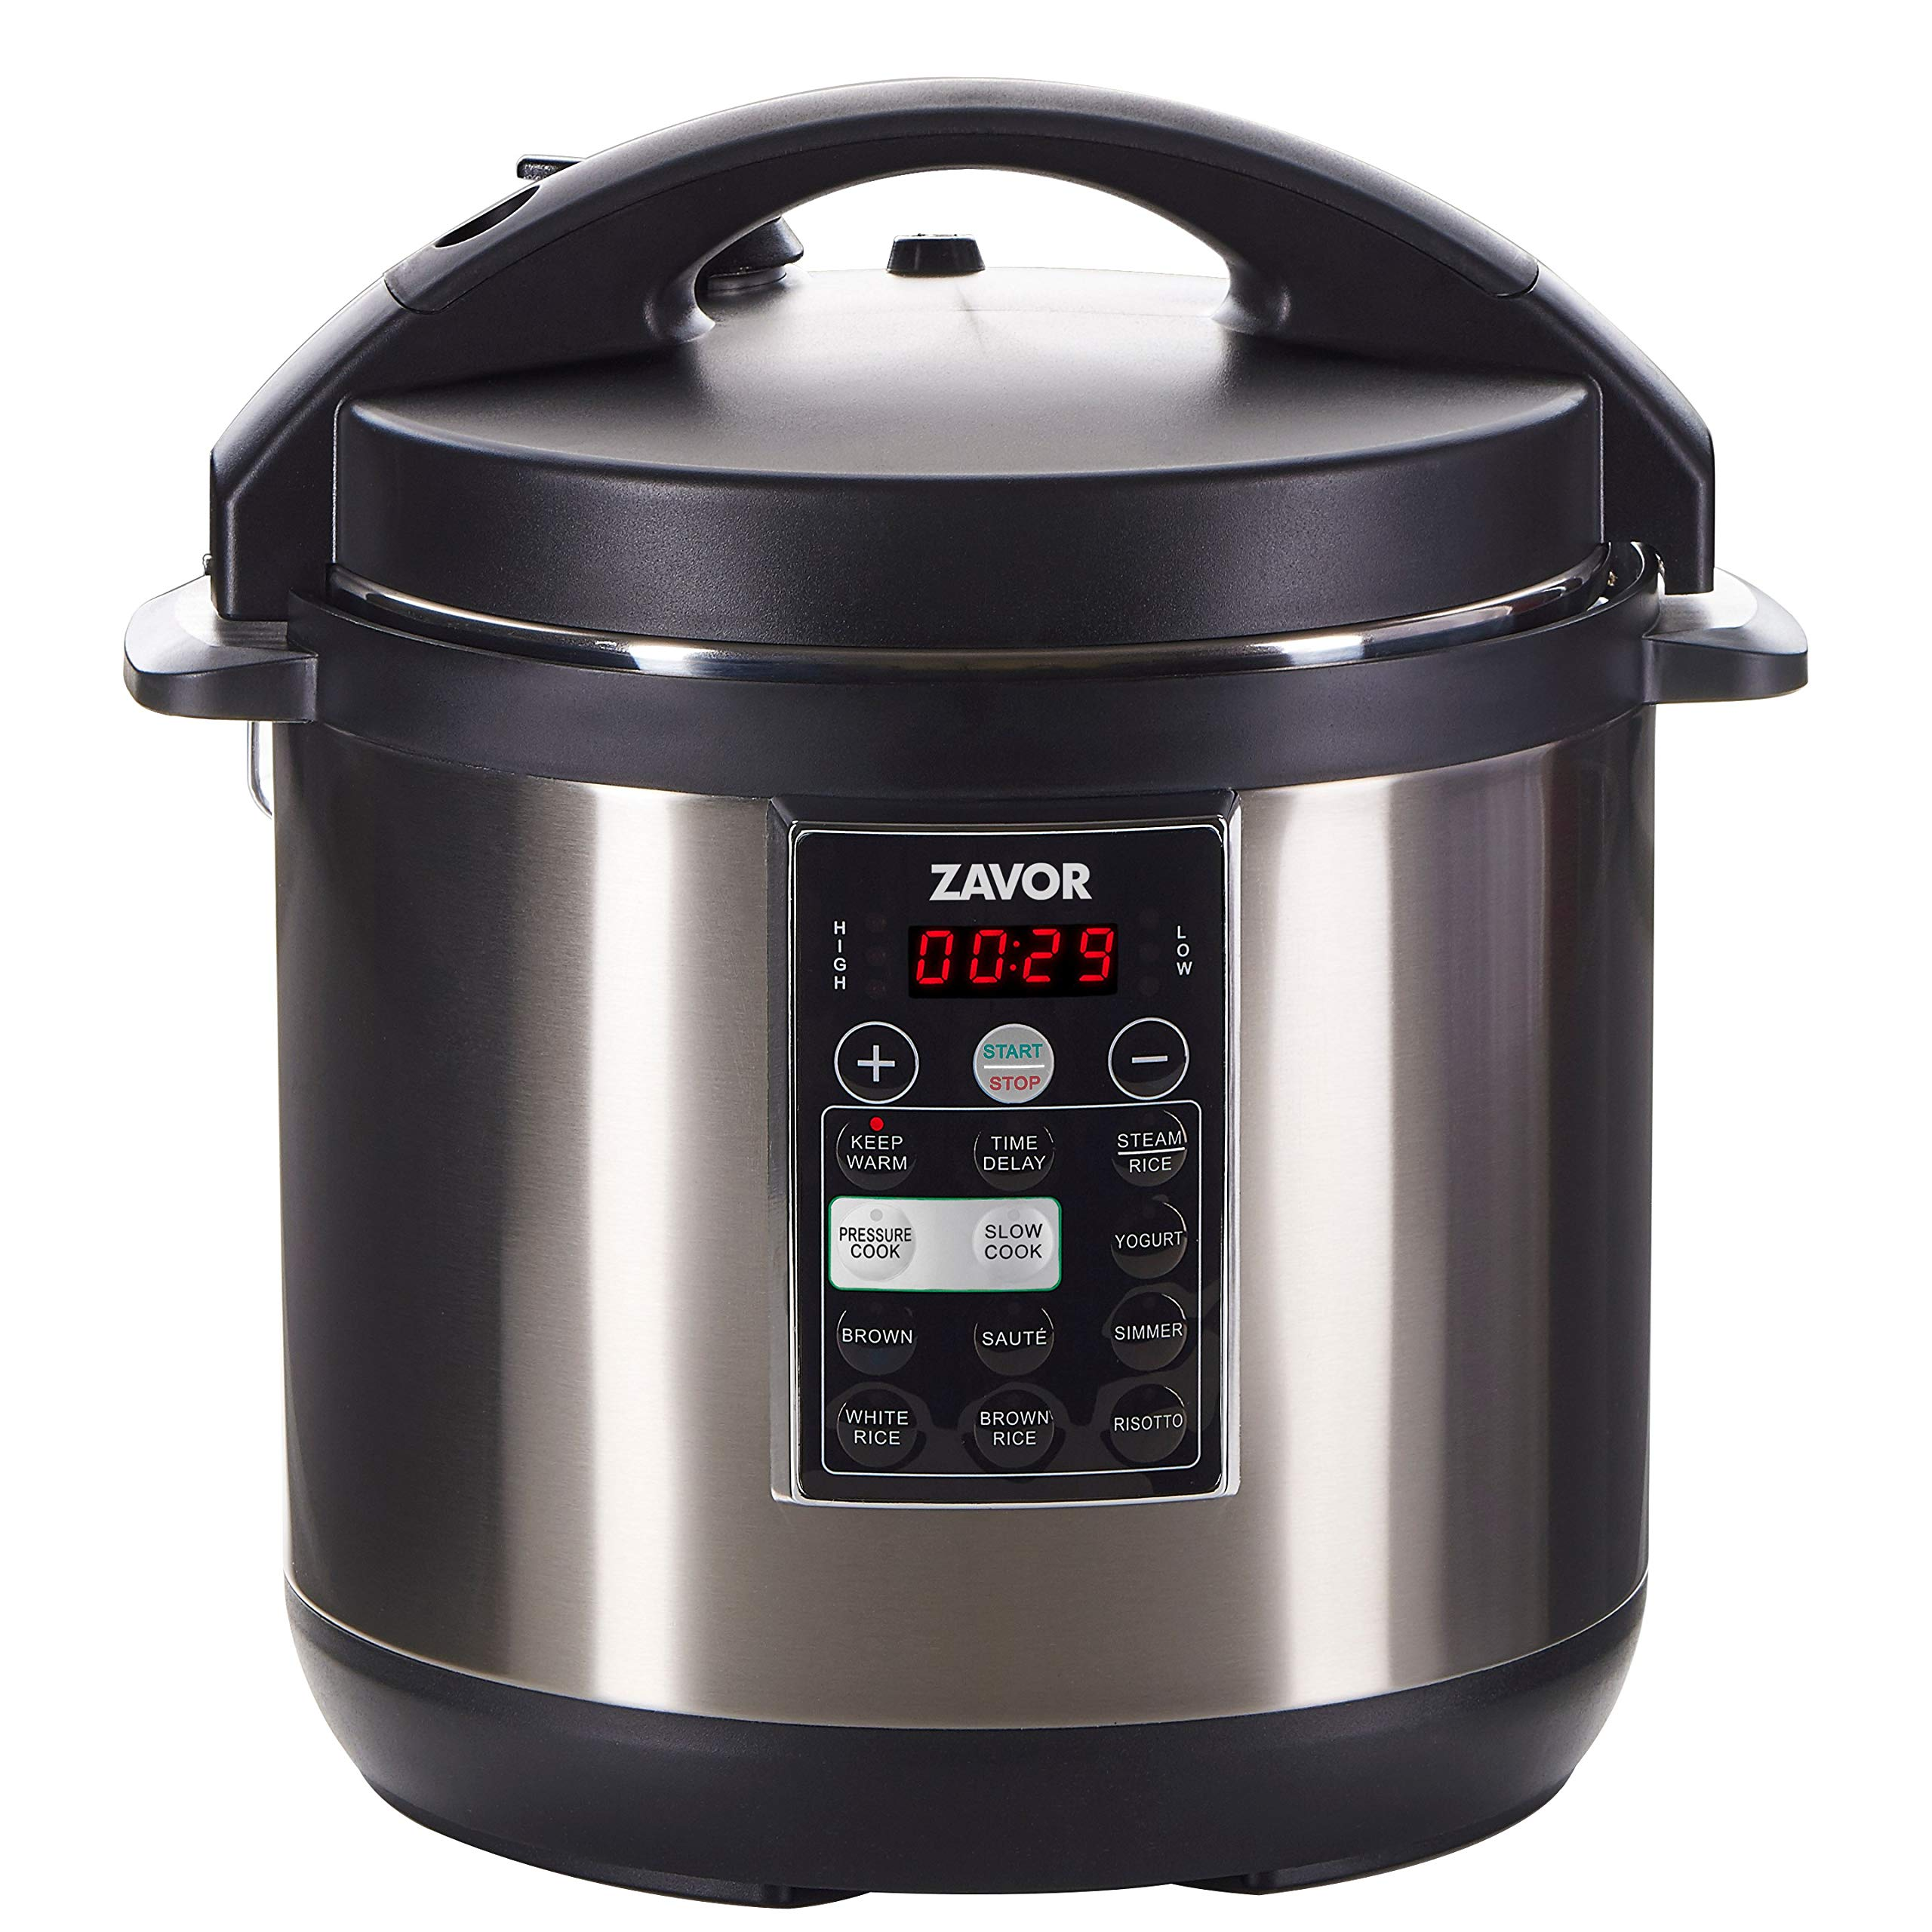 Zavor LUX Multi-Cooker, 6 Quart Electric Pressure Cooker, Slow Cooker, Rice Cooker, Yogurt Maker and more - Stainless Steel (ZSELX02)